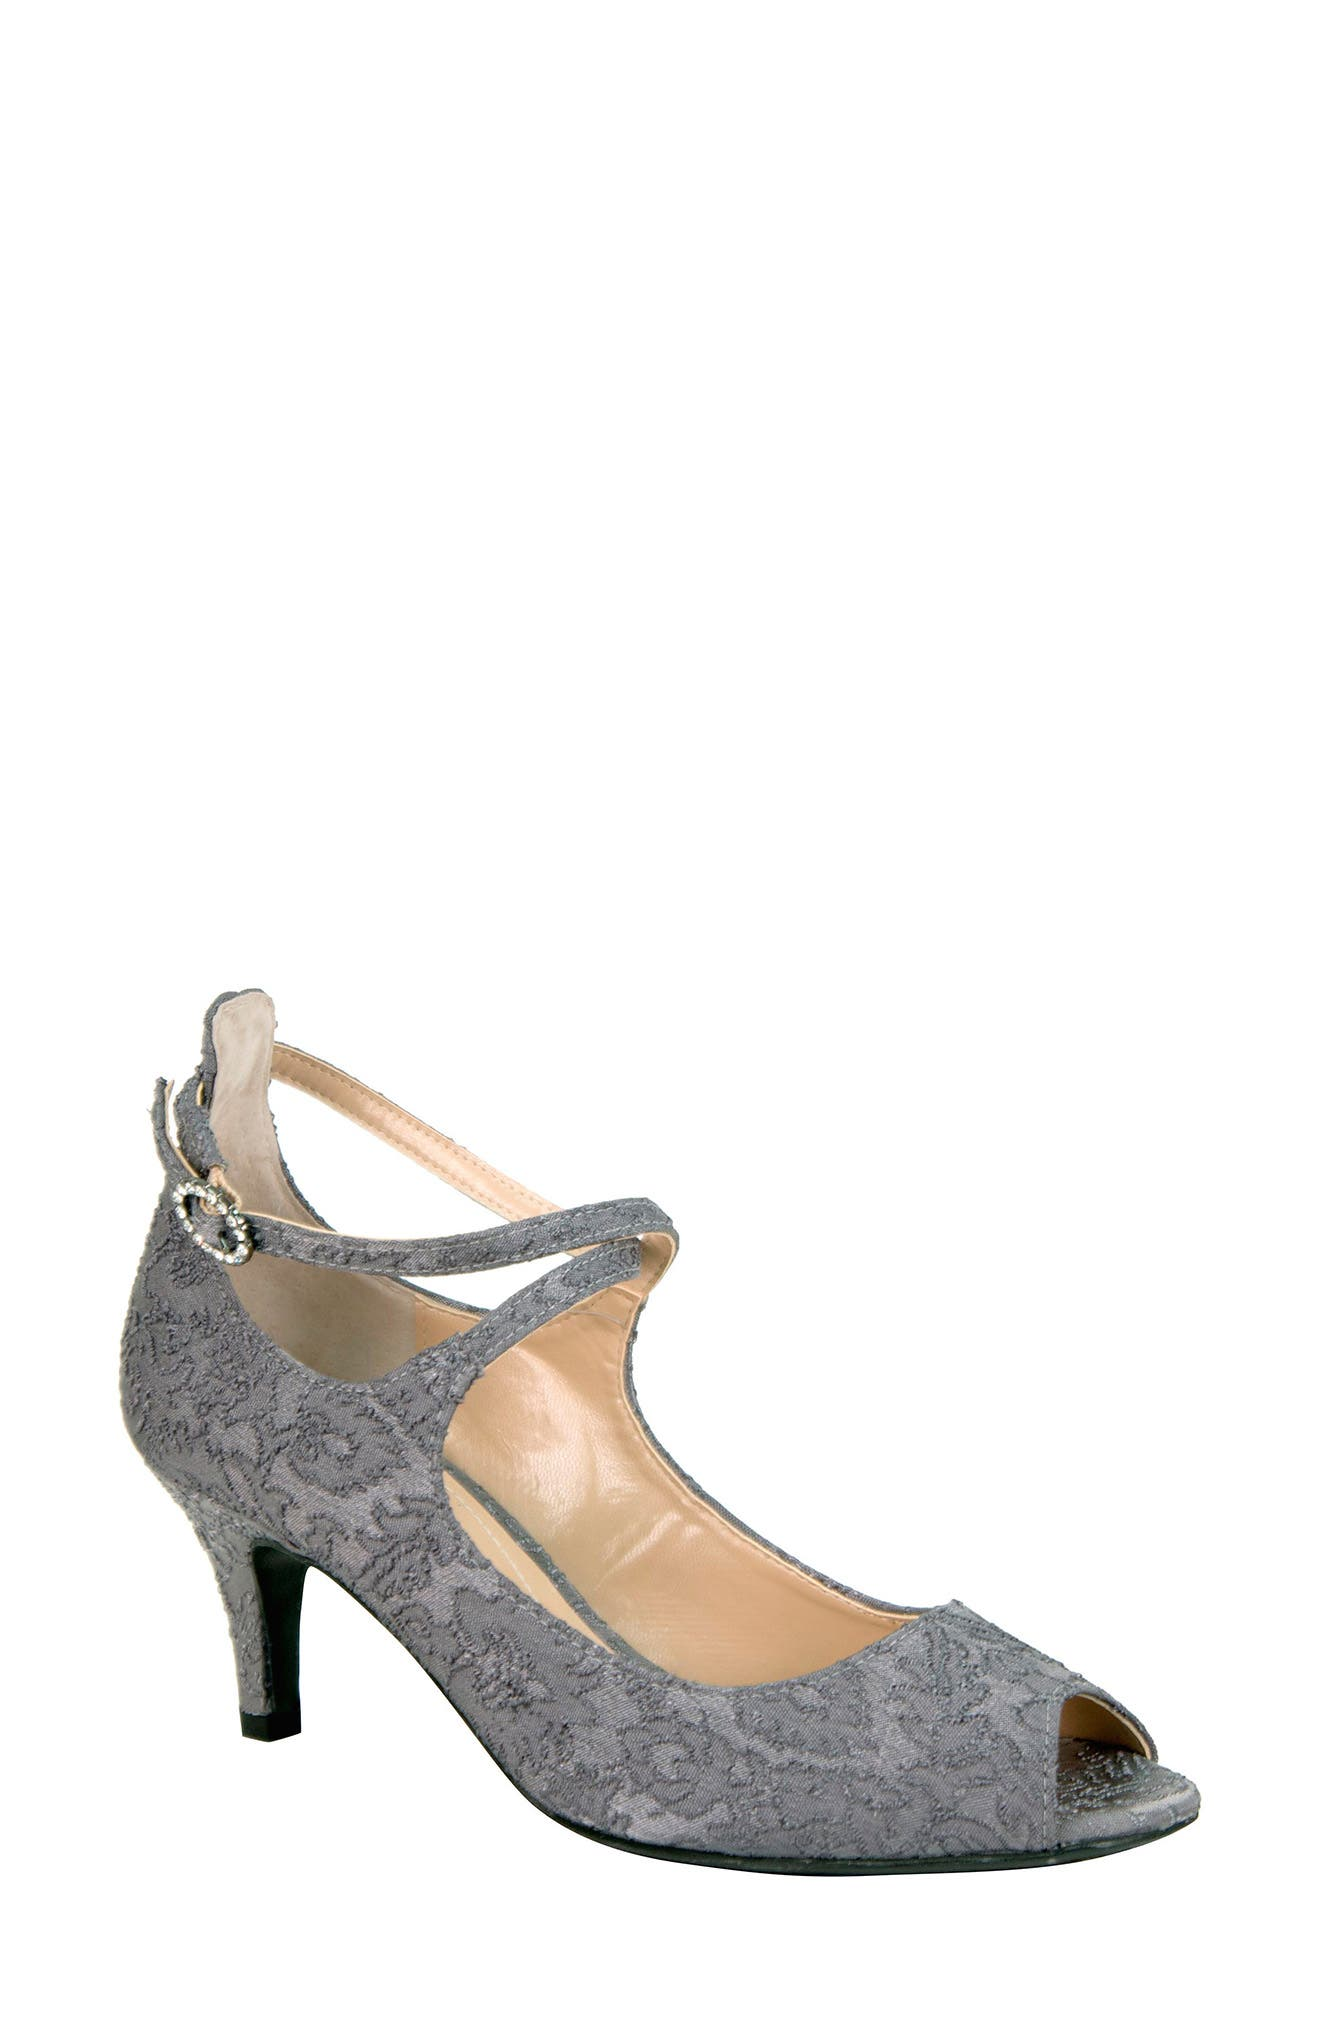 Main Image - J. Reneé Rolyne Peep Toe Pump (Women)